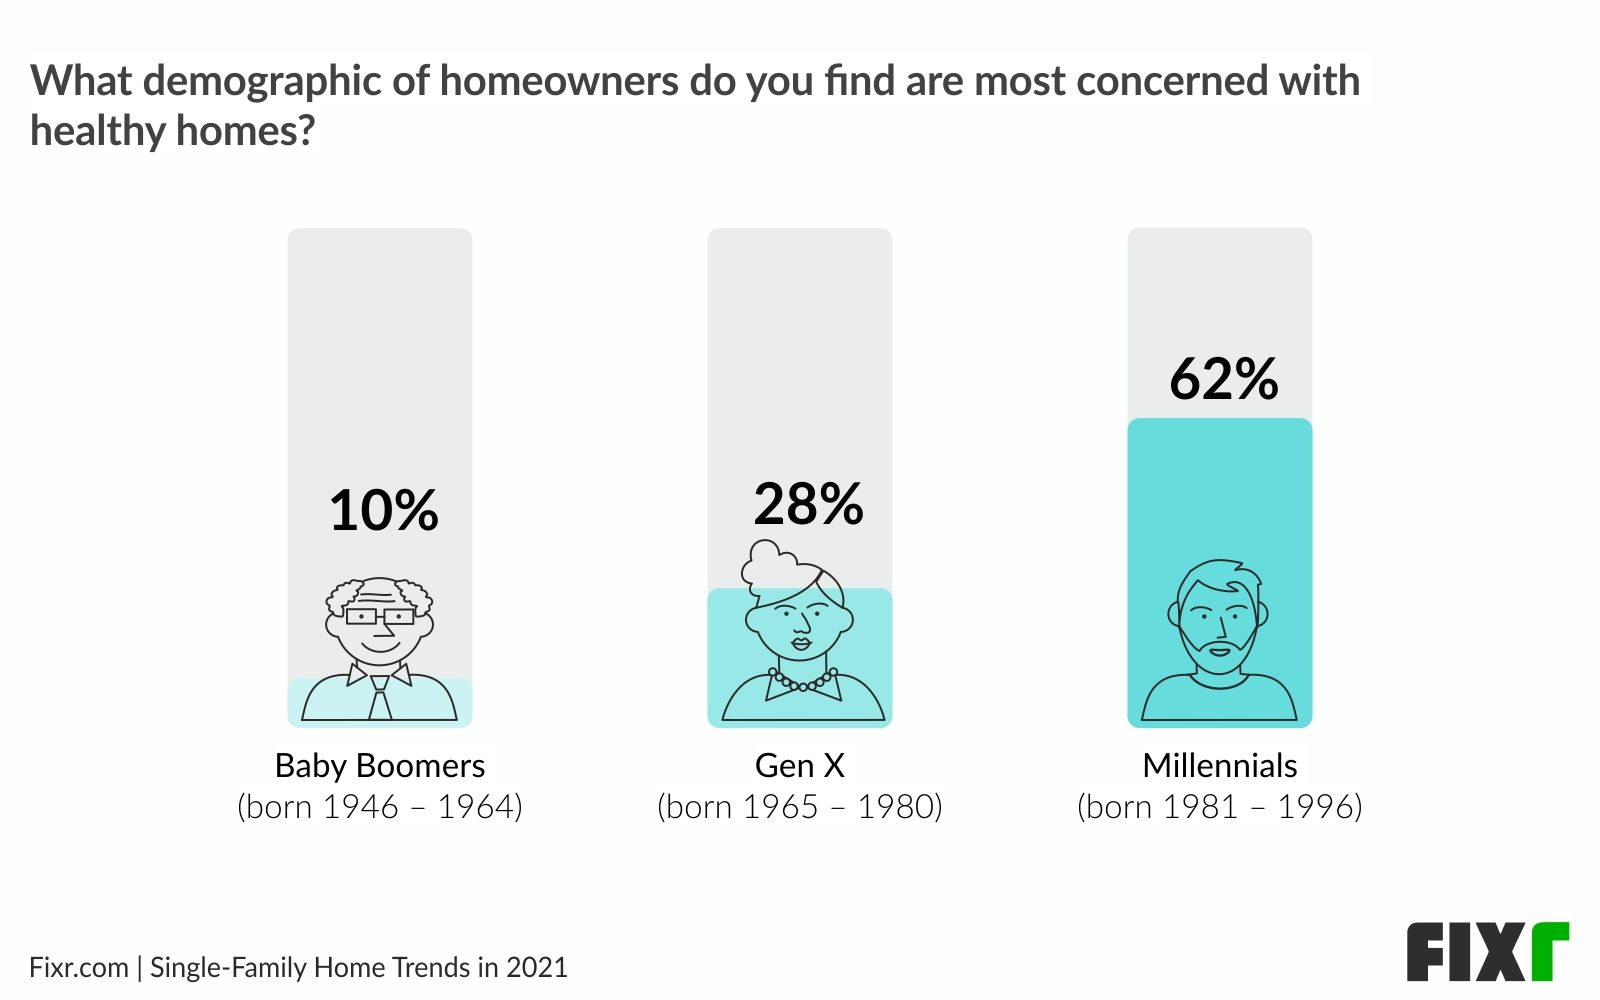 Healthy homes 2021 - Millennials are the most concerned about healthy homes